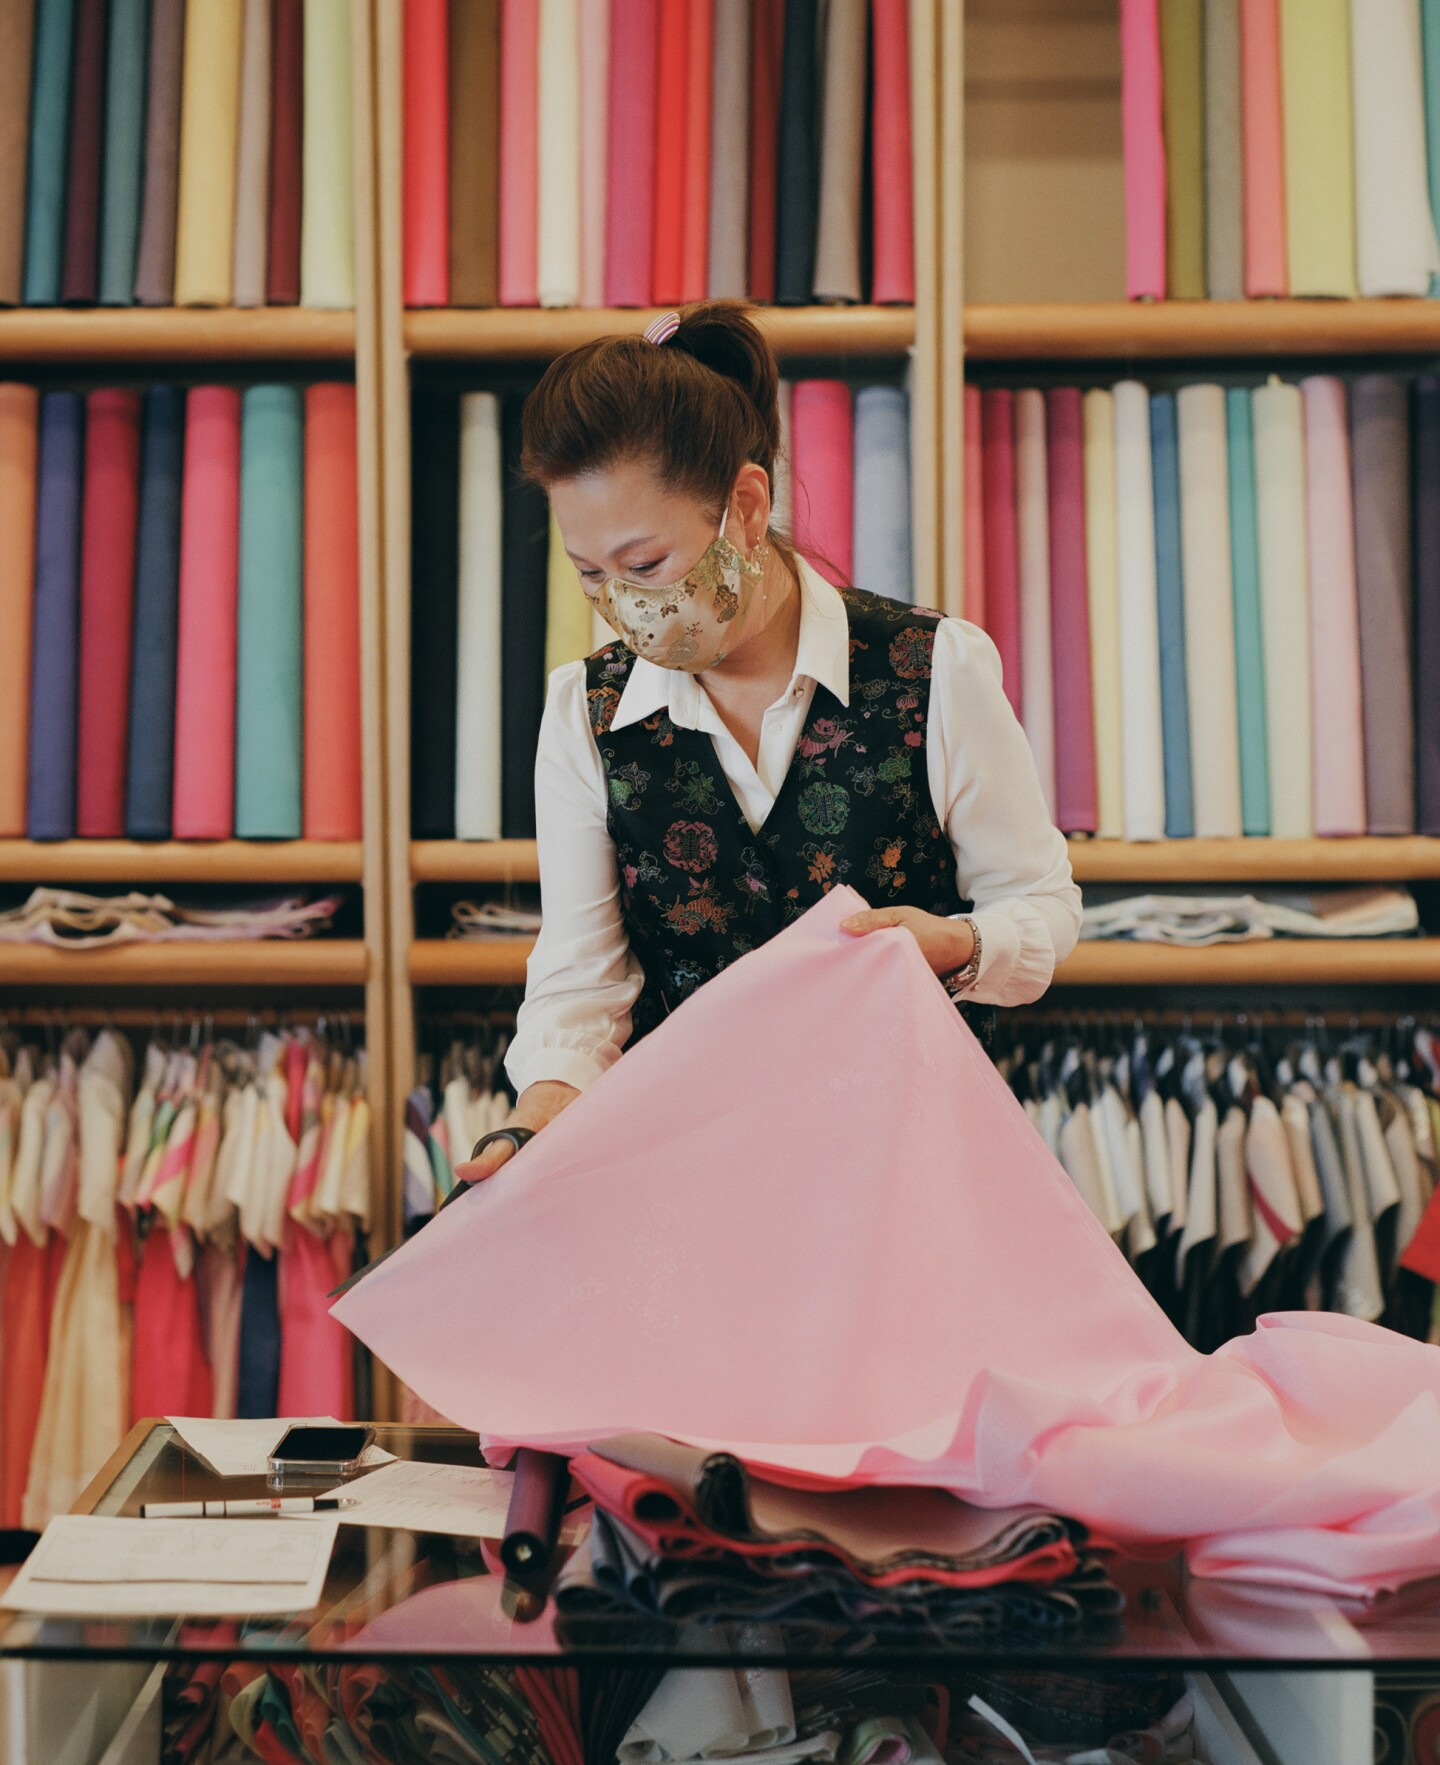 Laura folds a piece of fabric in her shop.